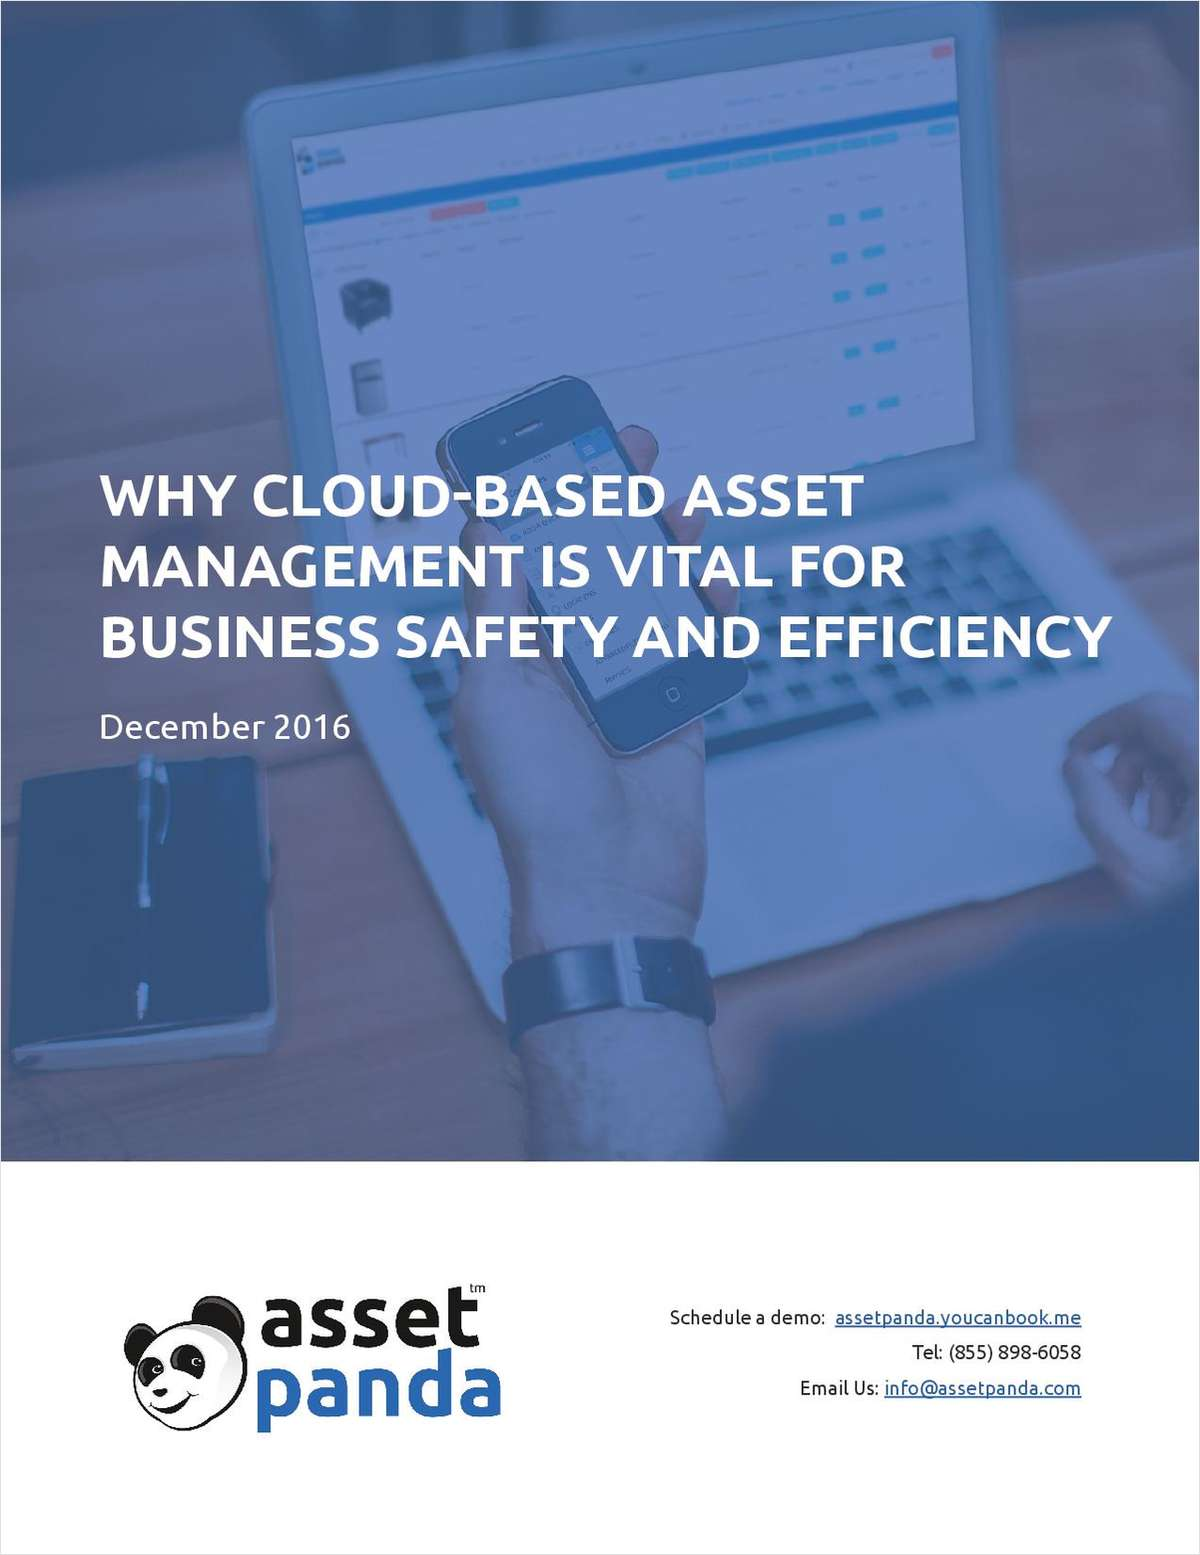 Why Cloud-Based Asset Management is Vital for Business Safety and Efficiency